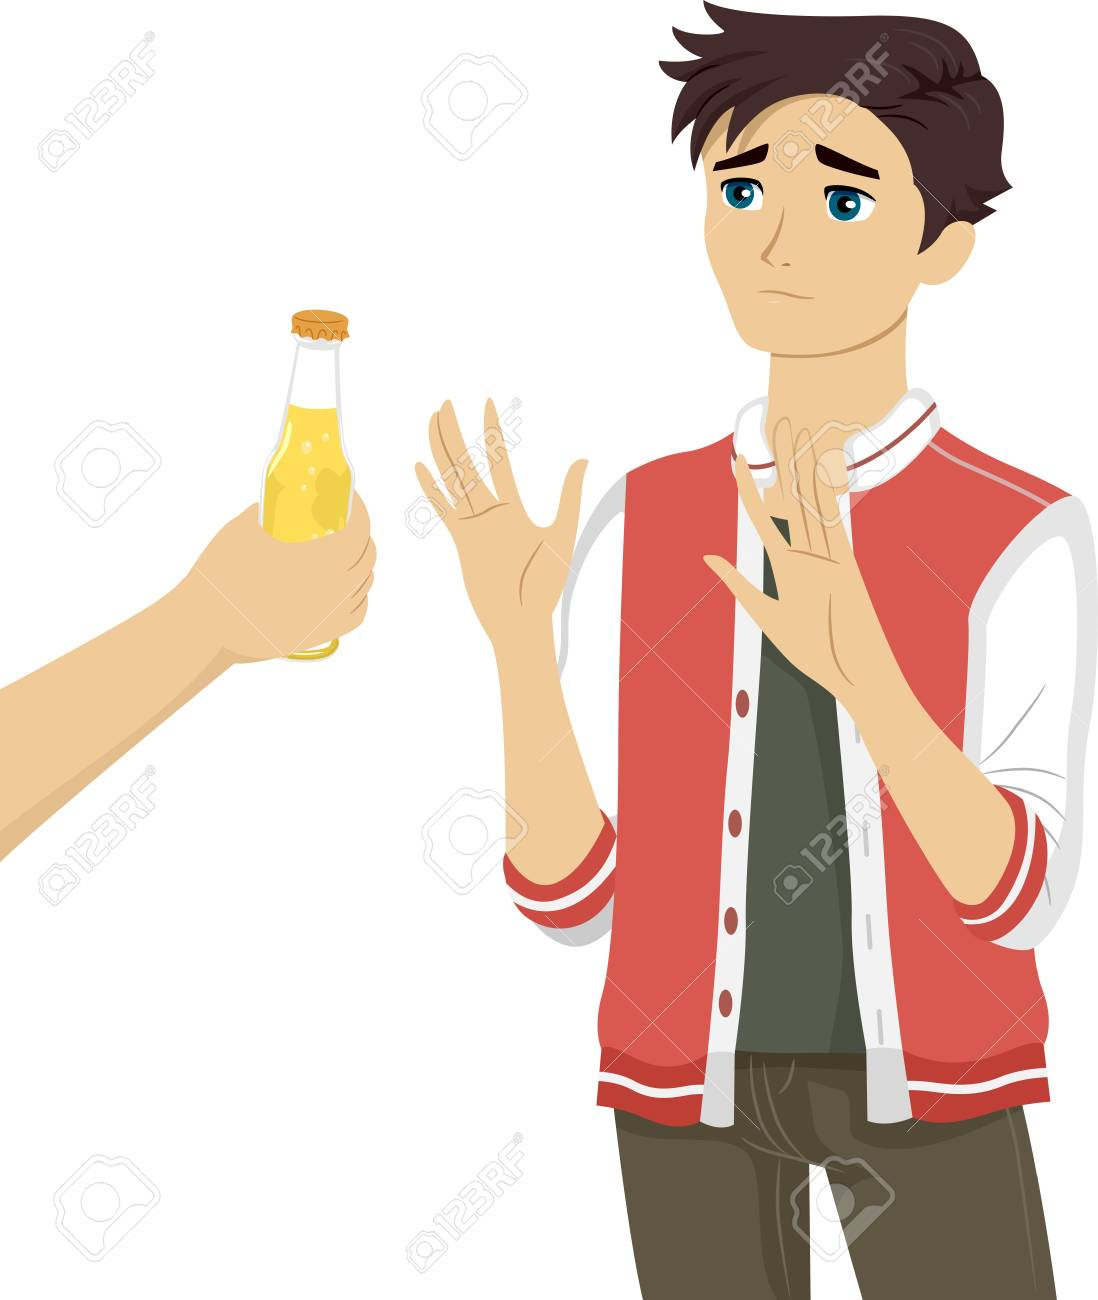 Beer Royalty Bottle Image Being Of Teenage Boy 36320215 A Photo The Refusing Illustration Free And Image Stock Picture